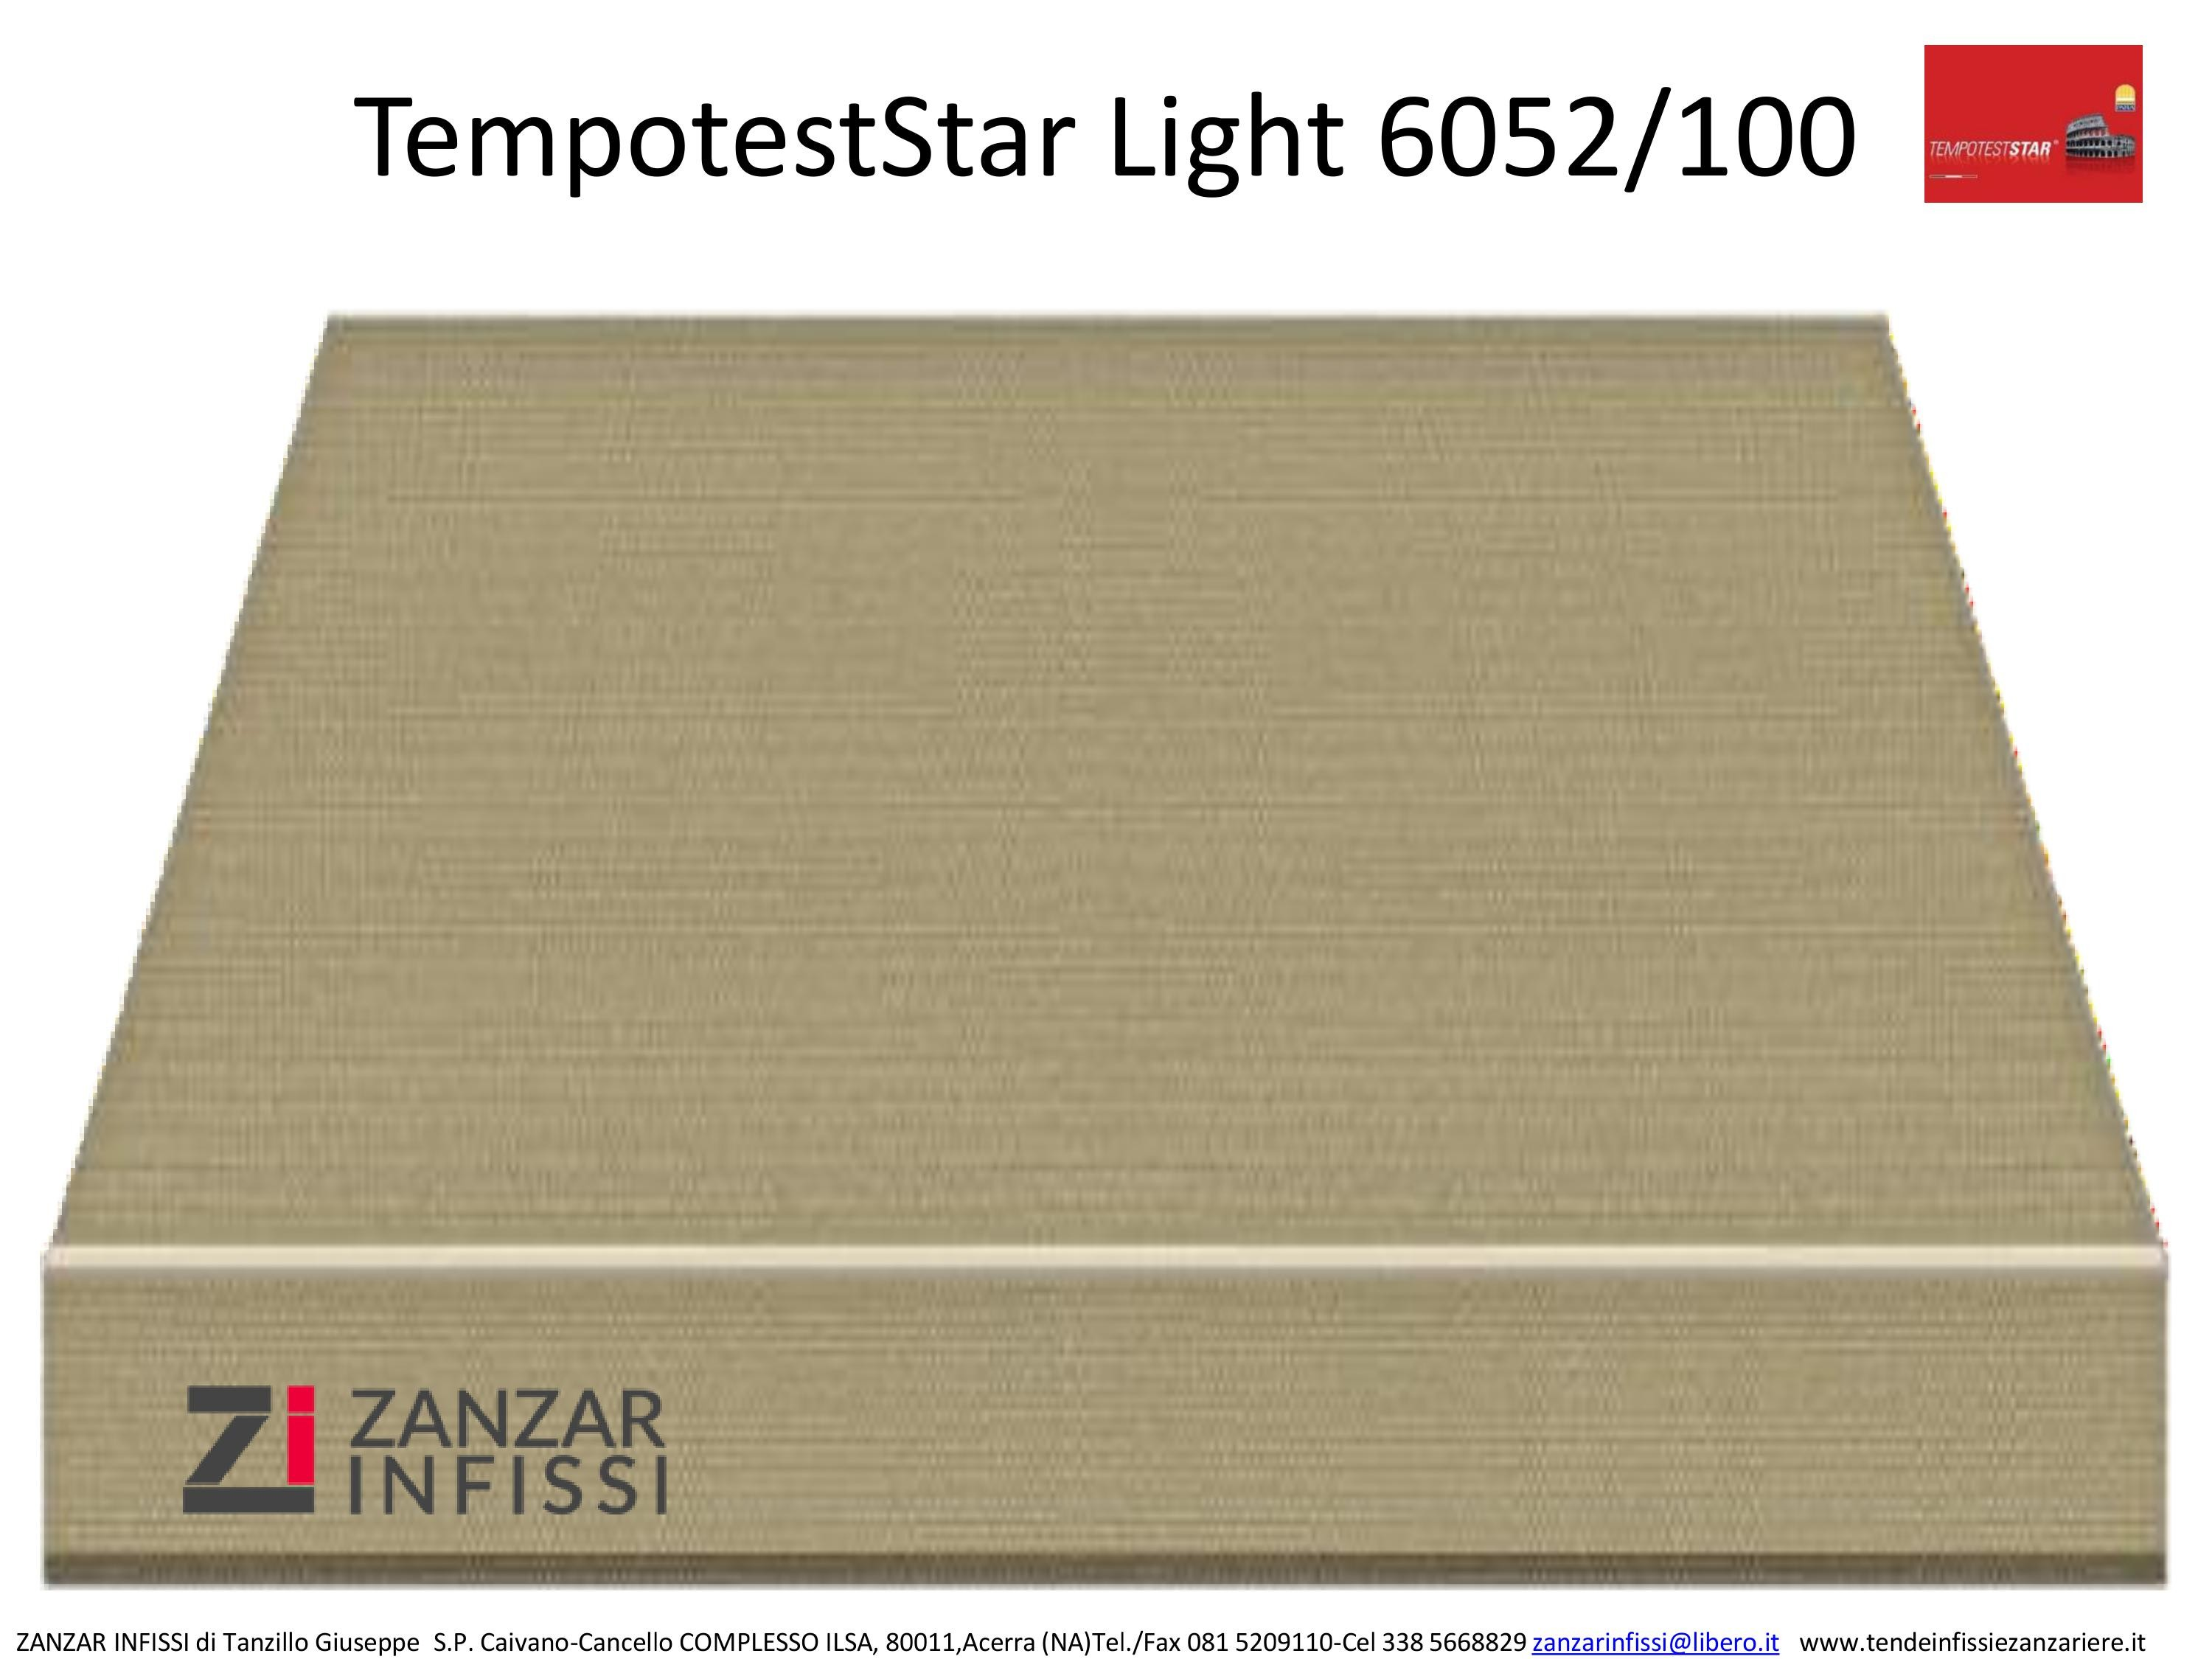 Tempotest star light 6052/100